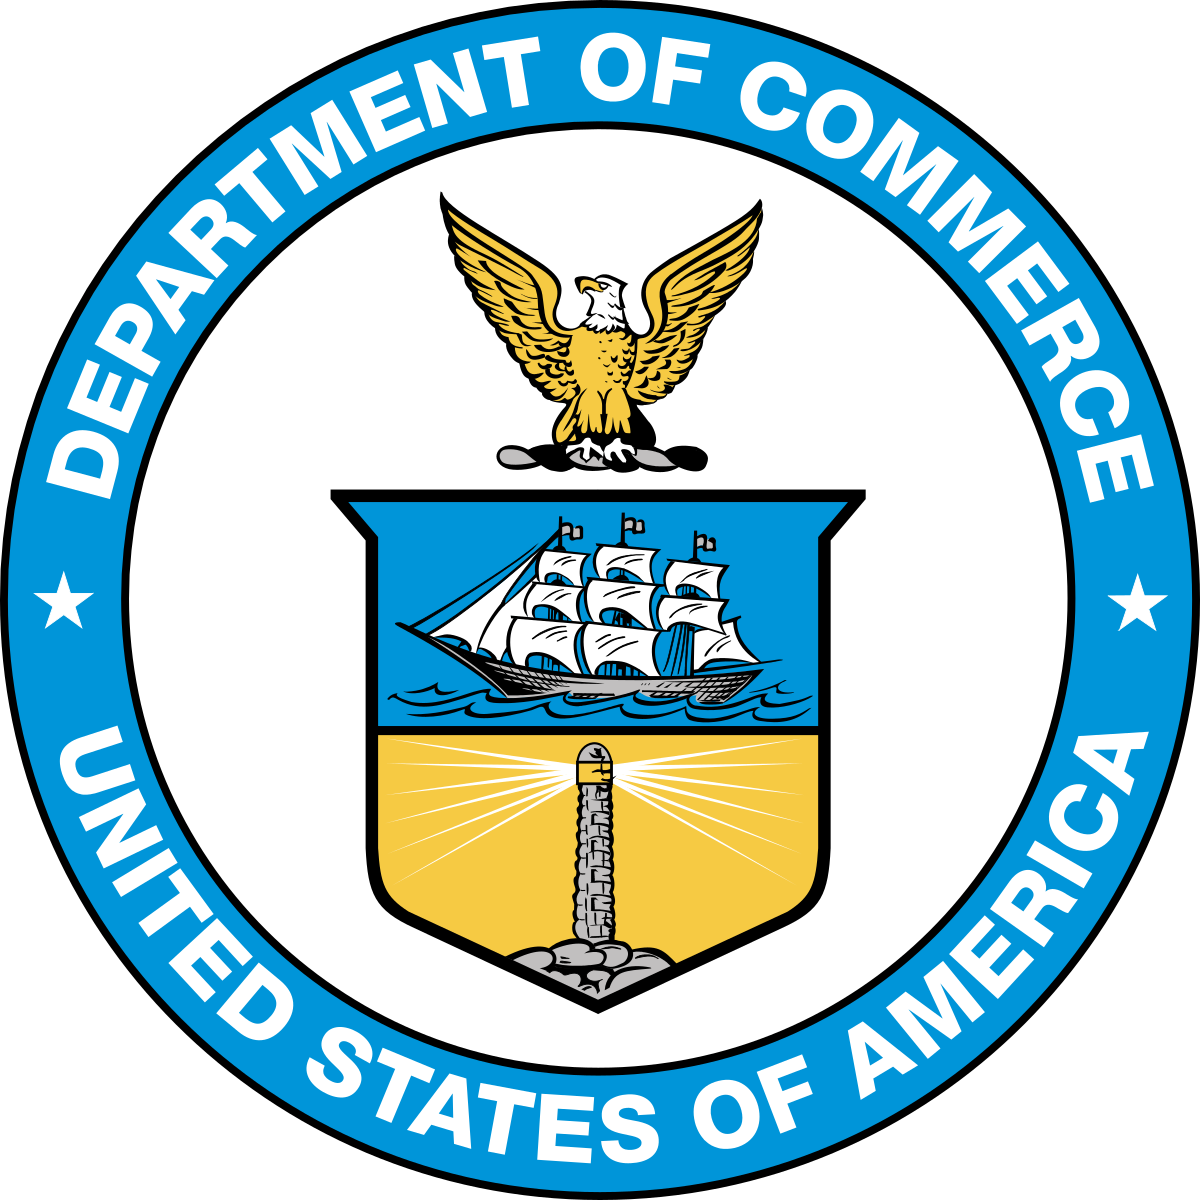 United States Assistant Secretary For Health Png - United States Deputy Secretary of Commerce - Wikipedia